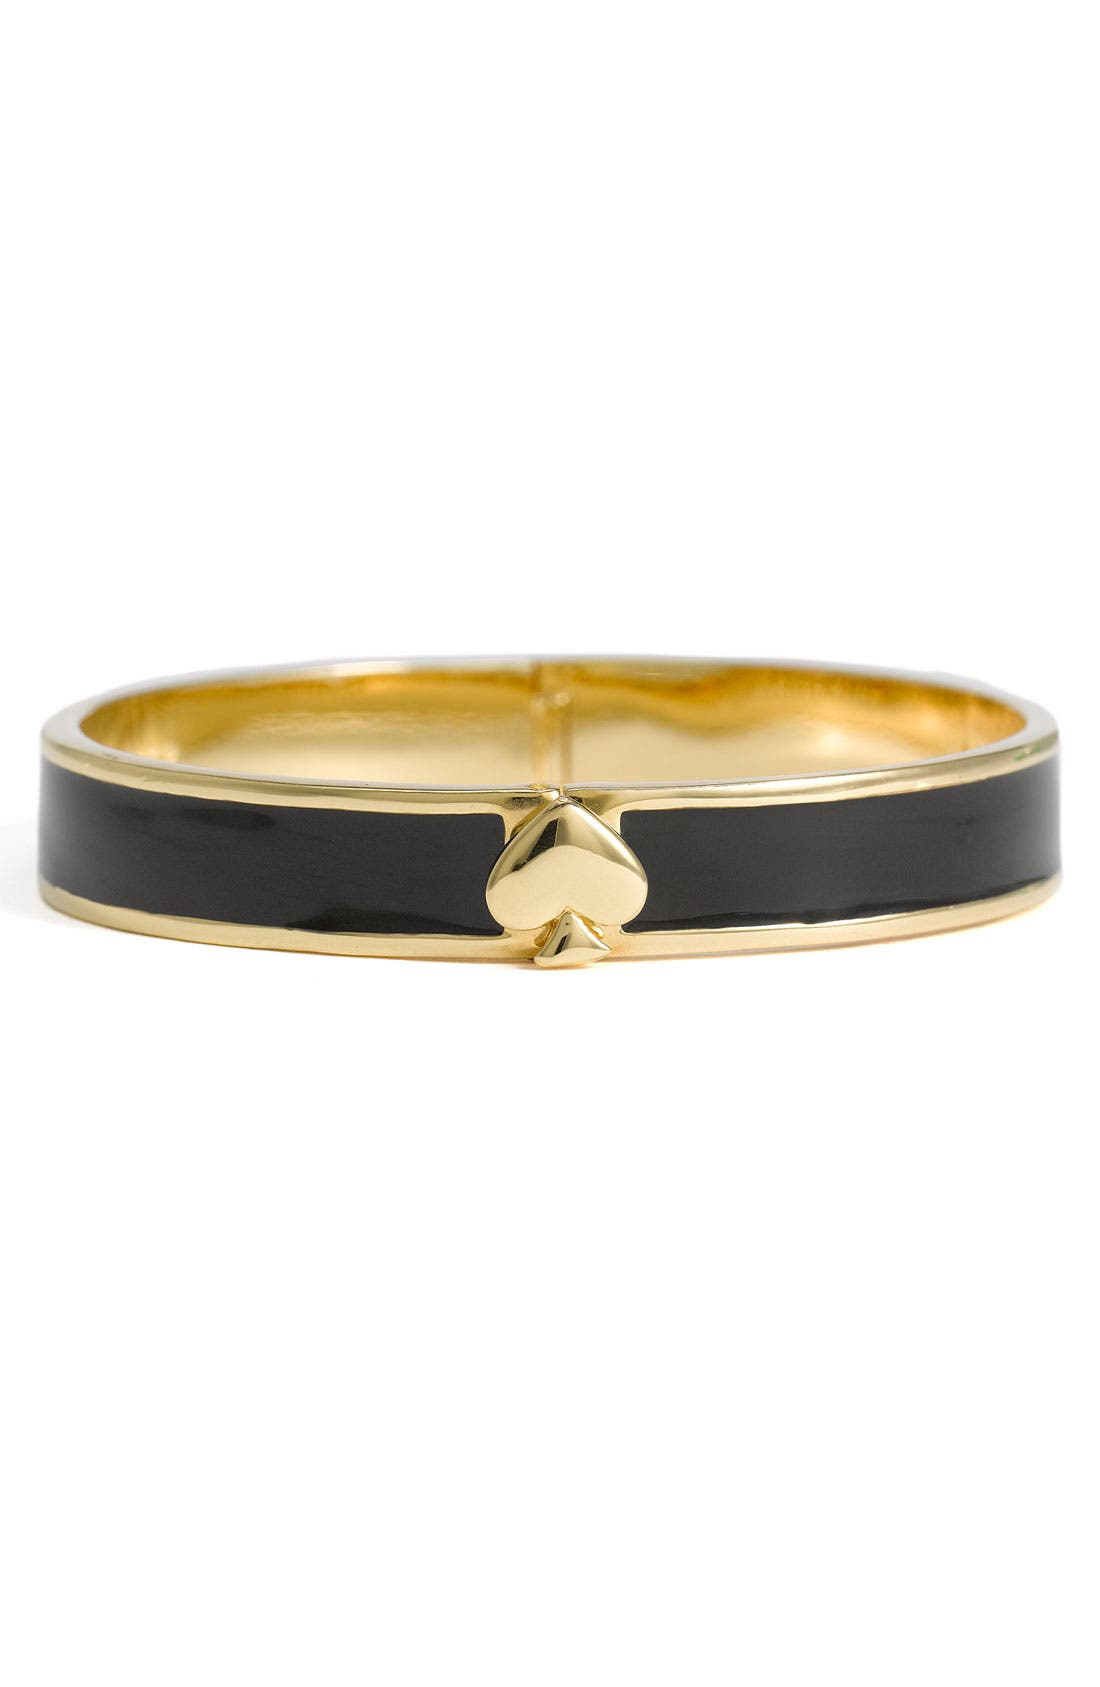 Main Image - kate spade new york 'spade' hinged bangle